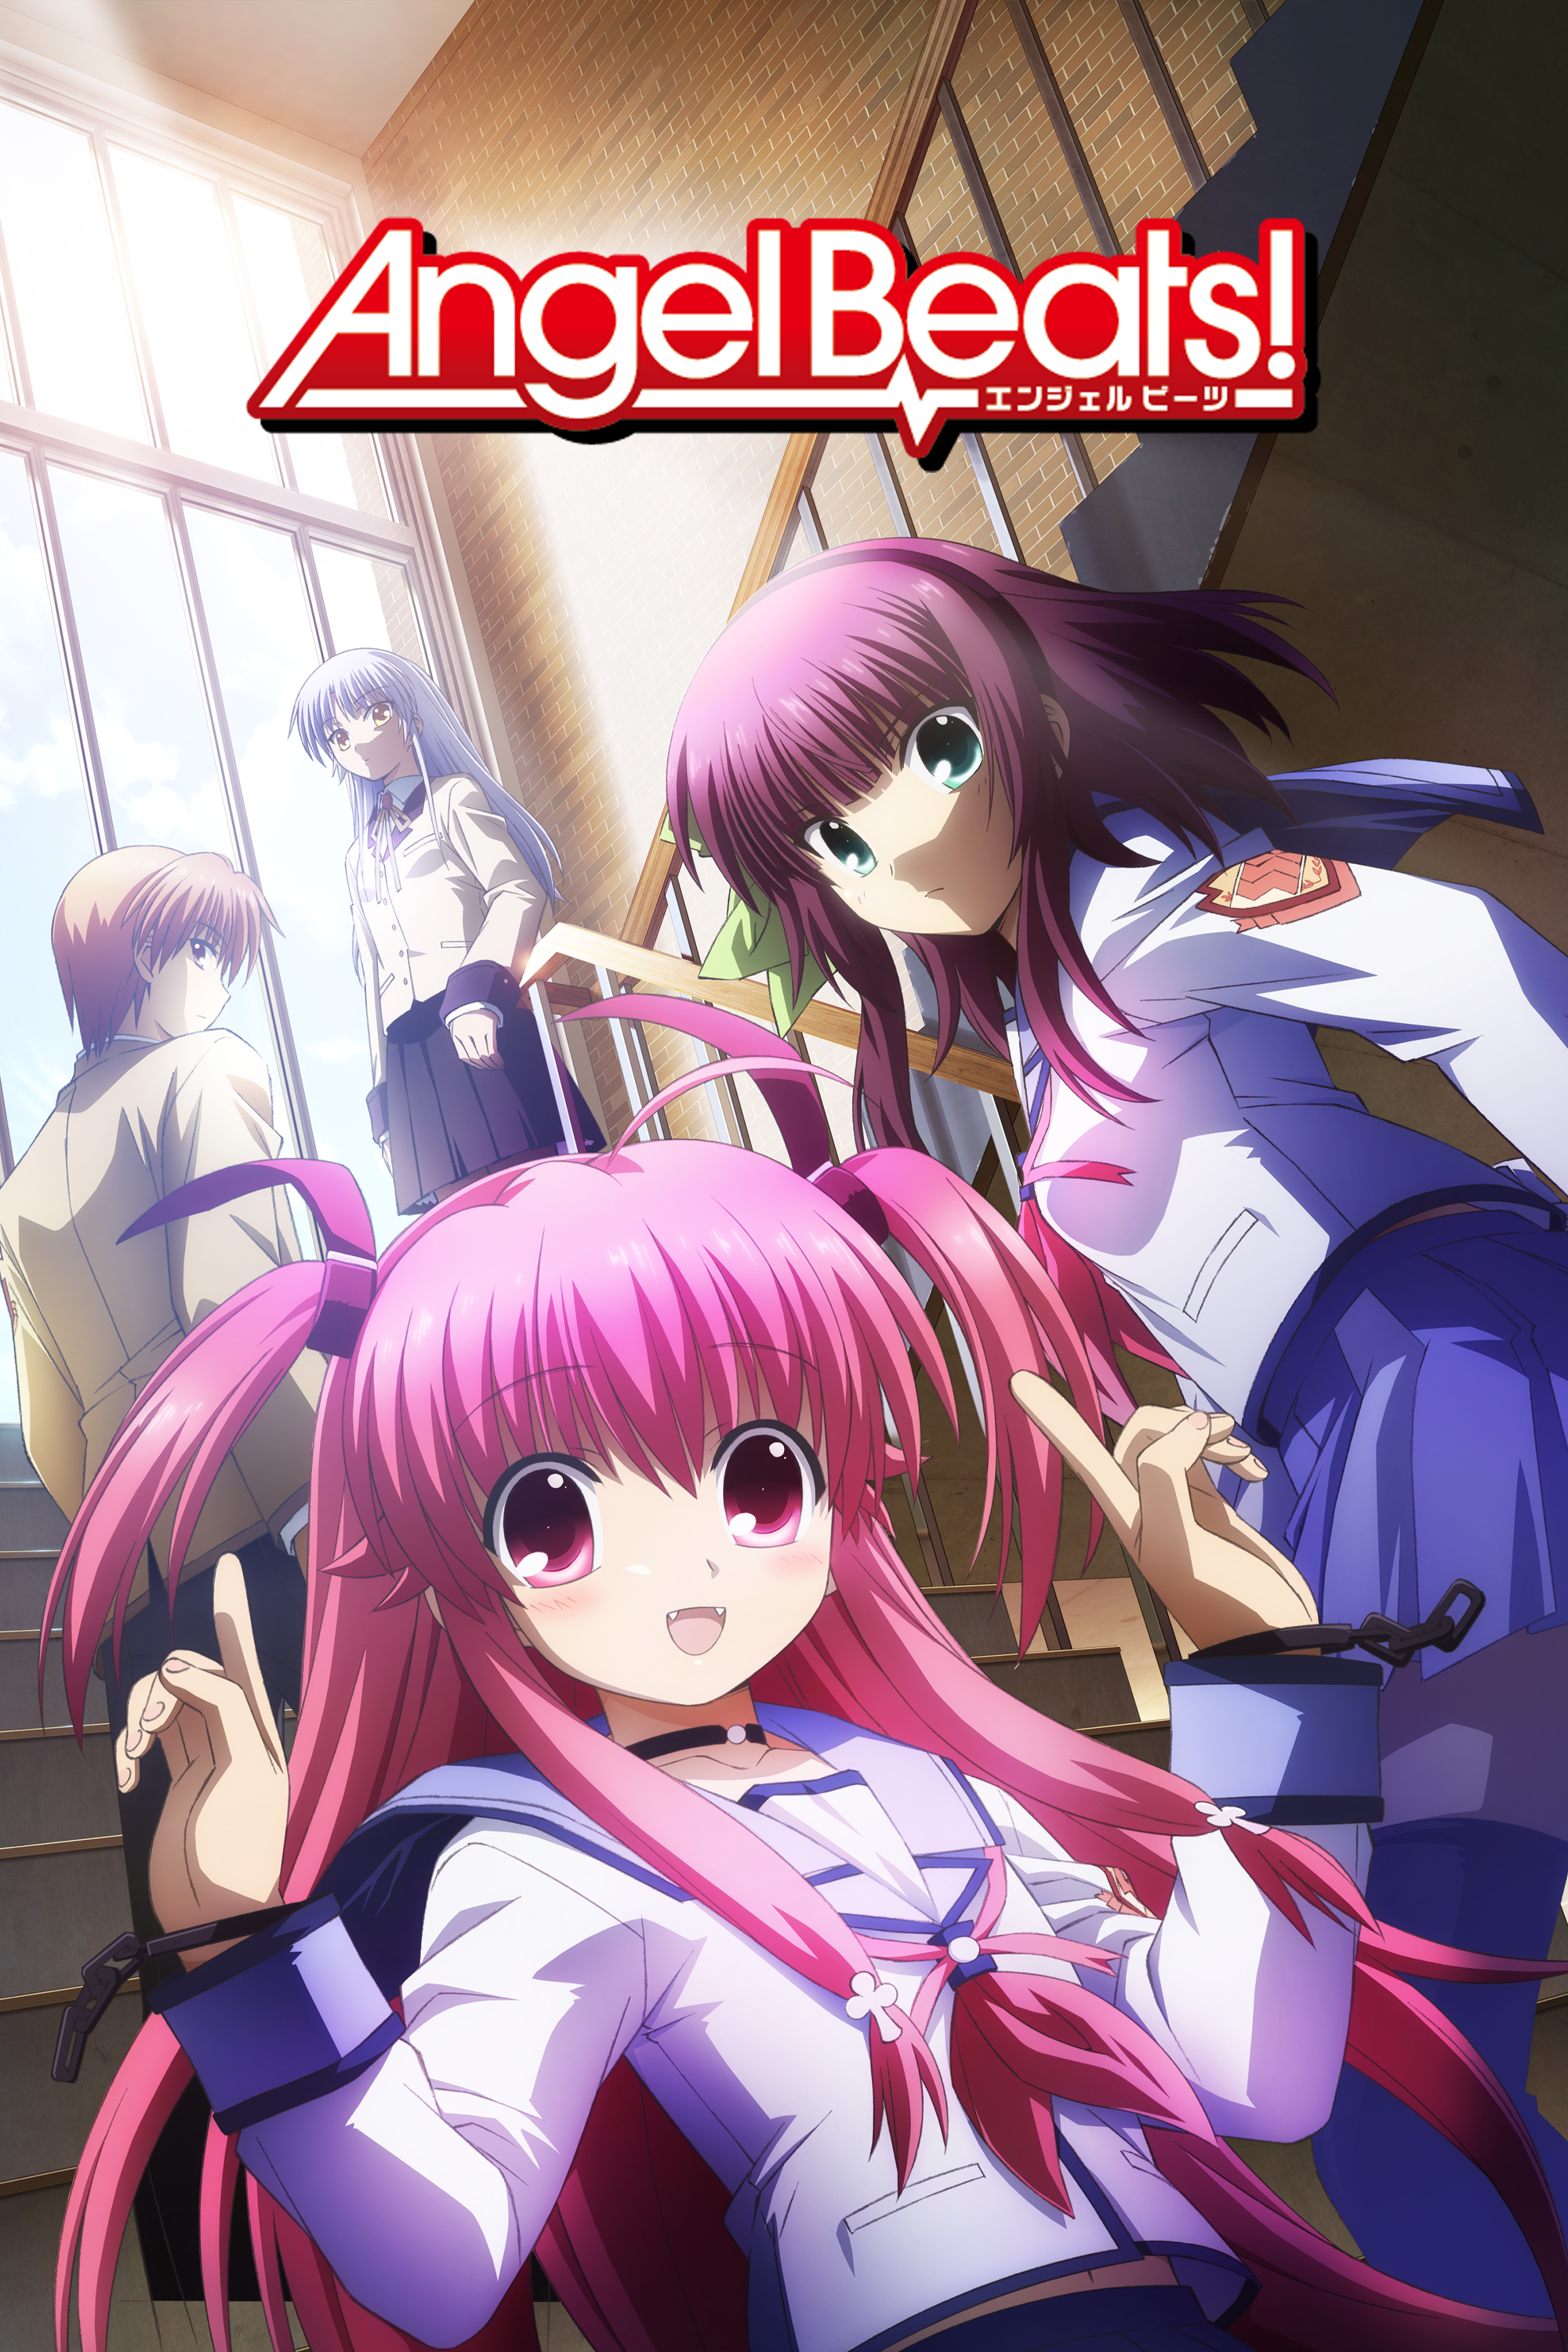 Watch Angel Beats Sub Dub Action Adventure Comedy Drama Anime Funimation